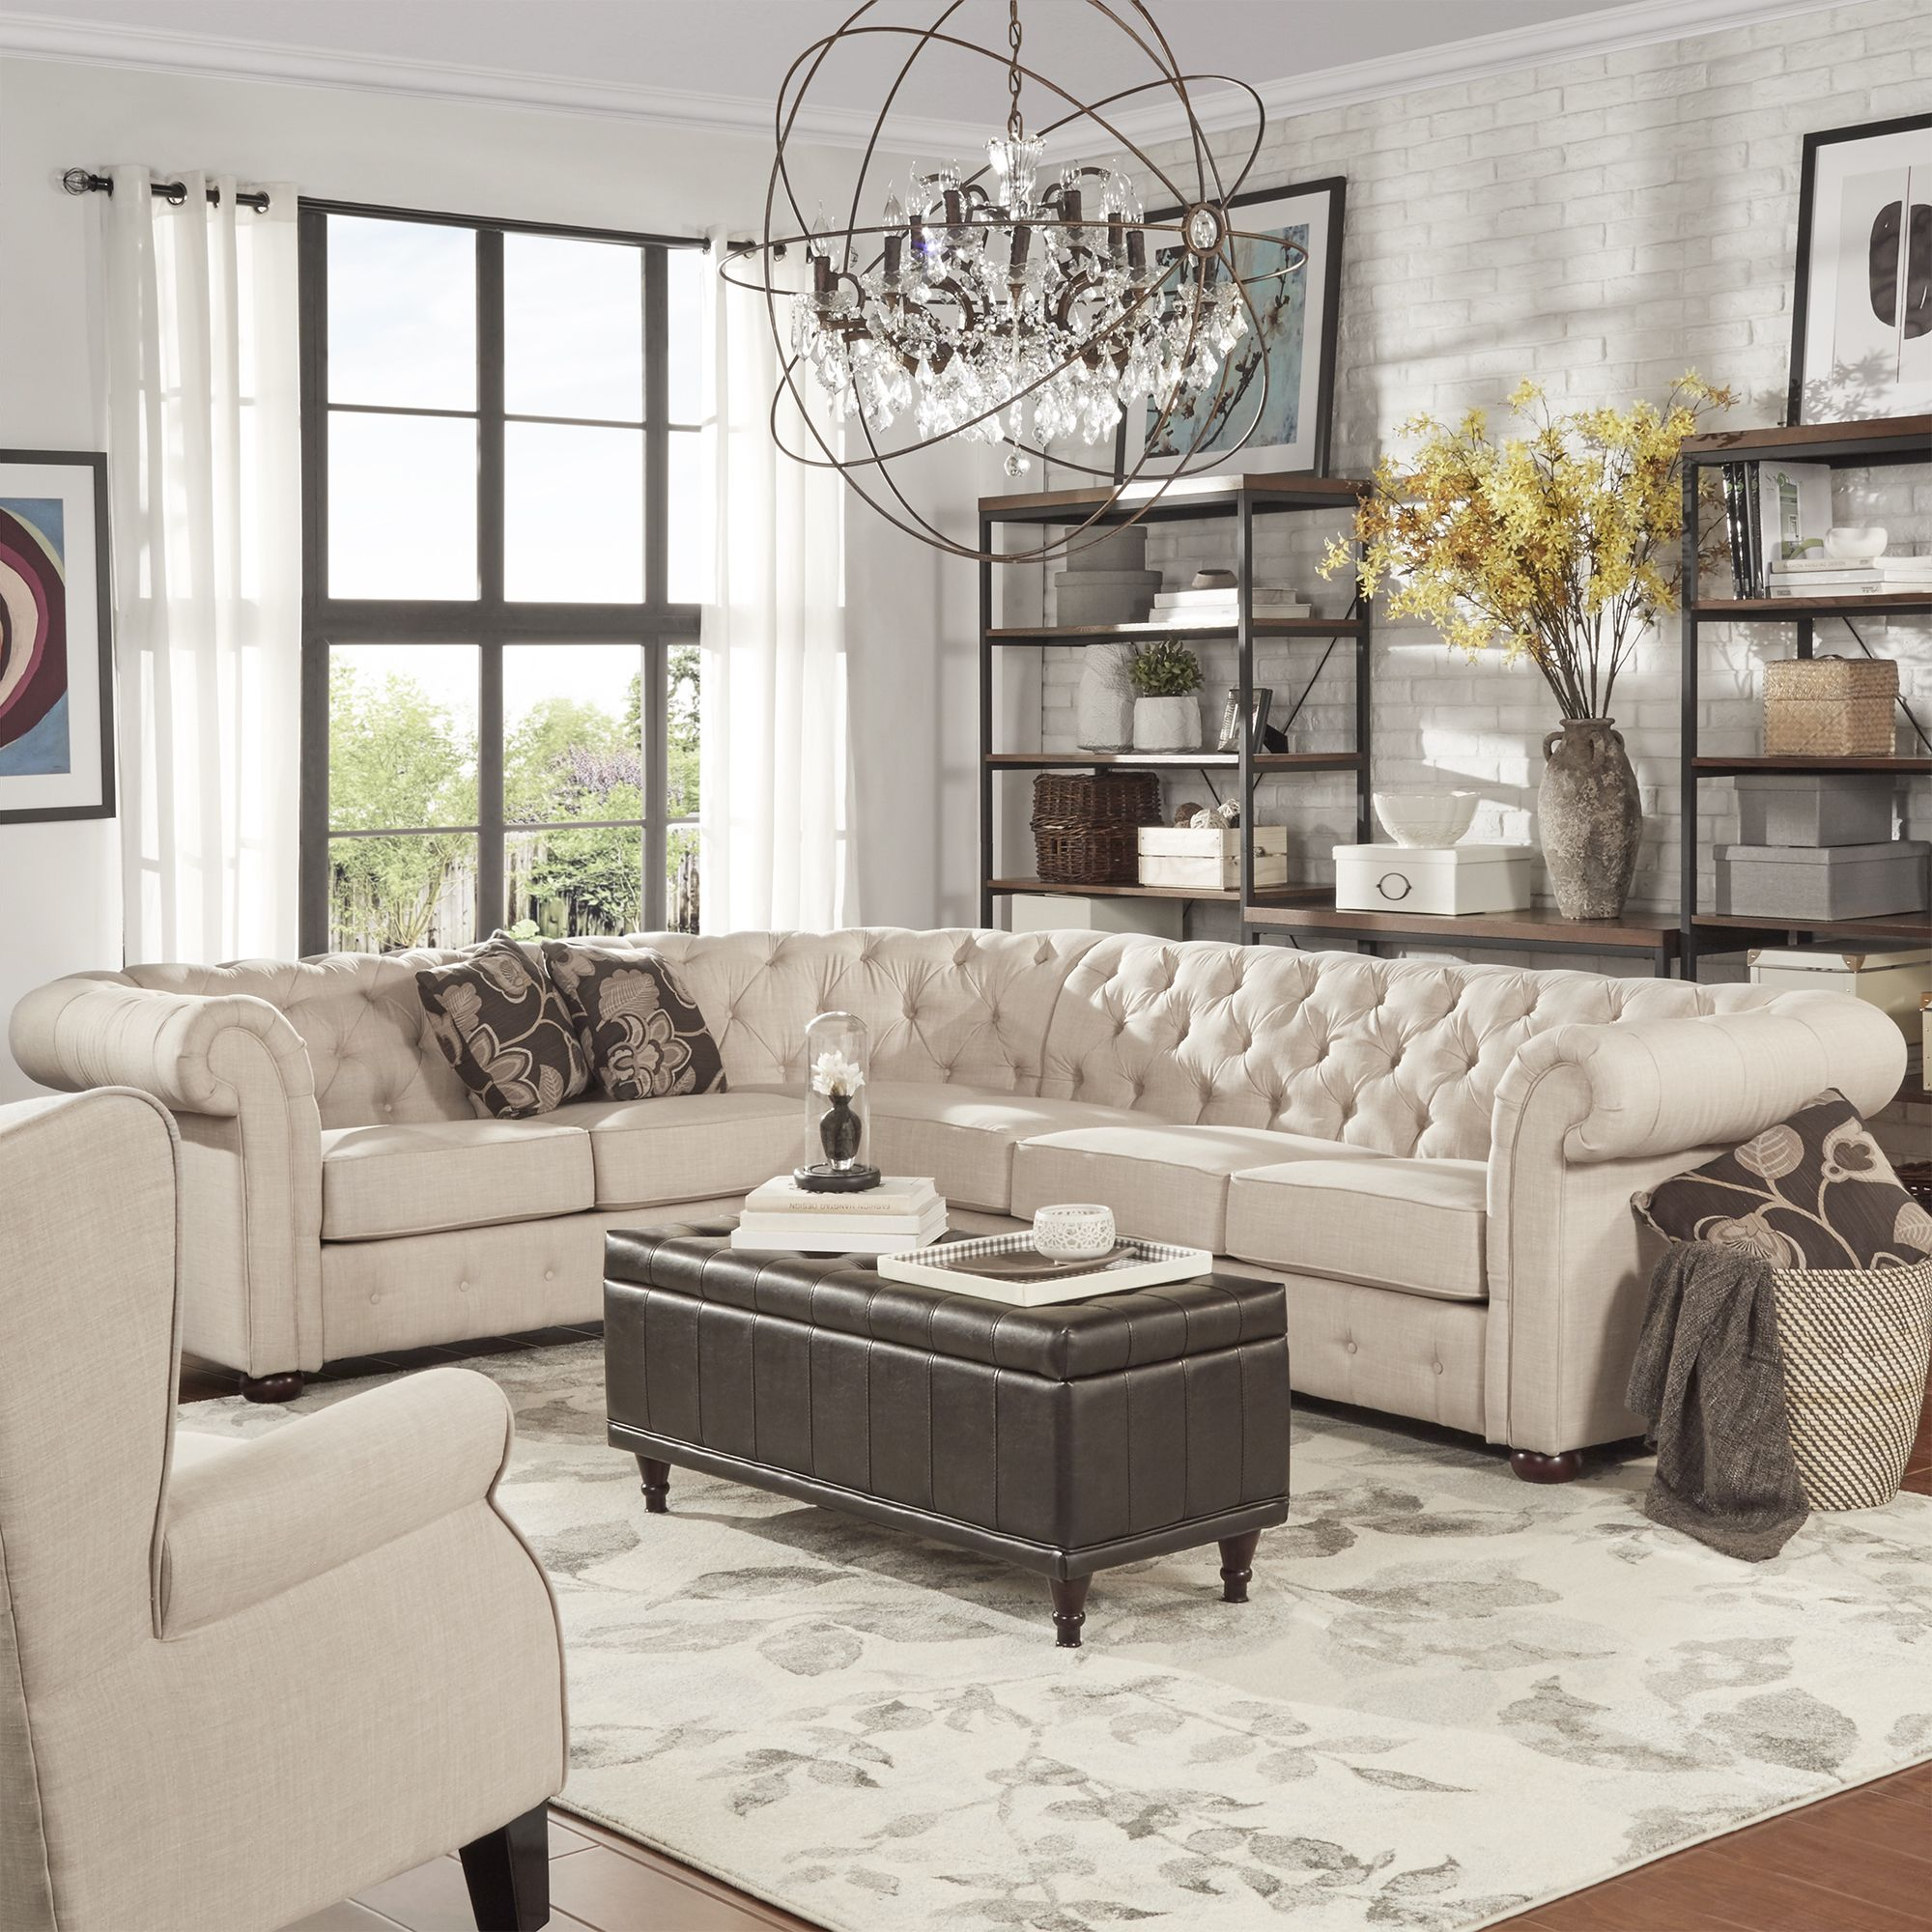 Best 25 Tufted sectional sofa ideas on Pinterest